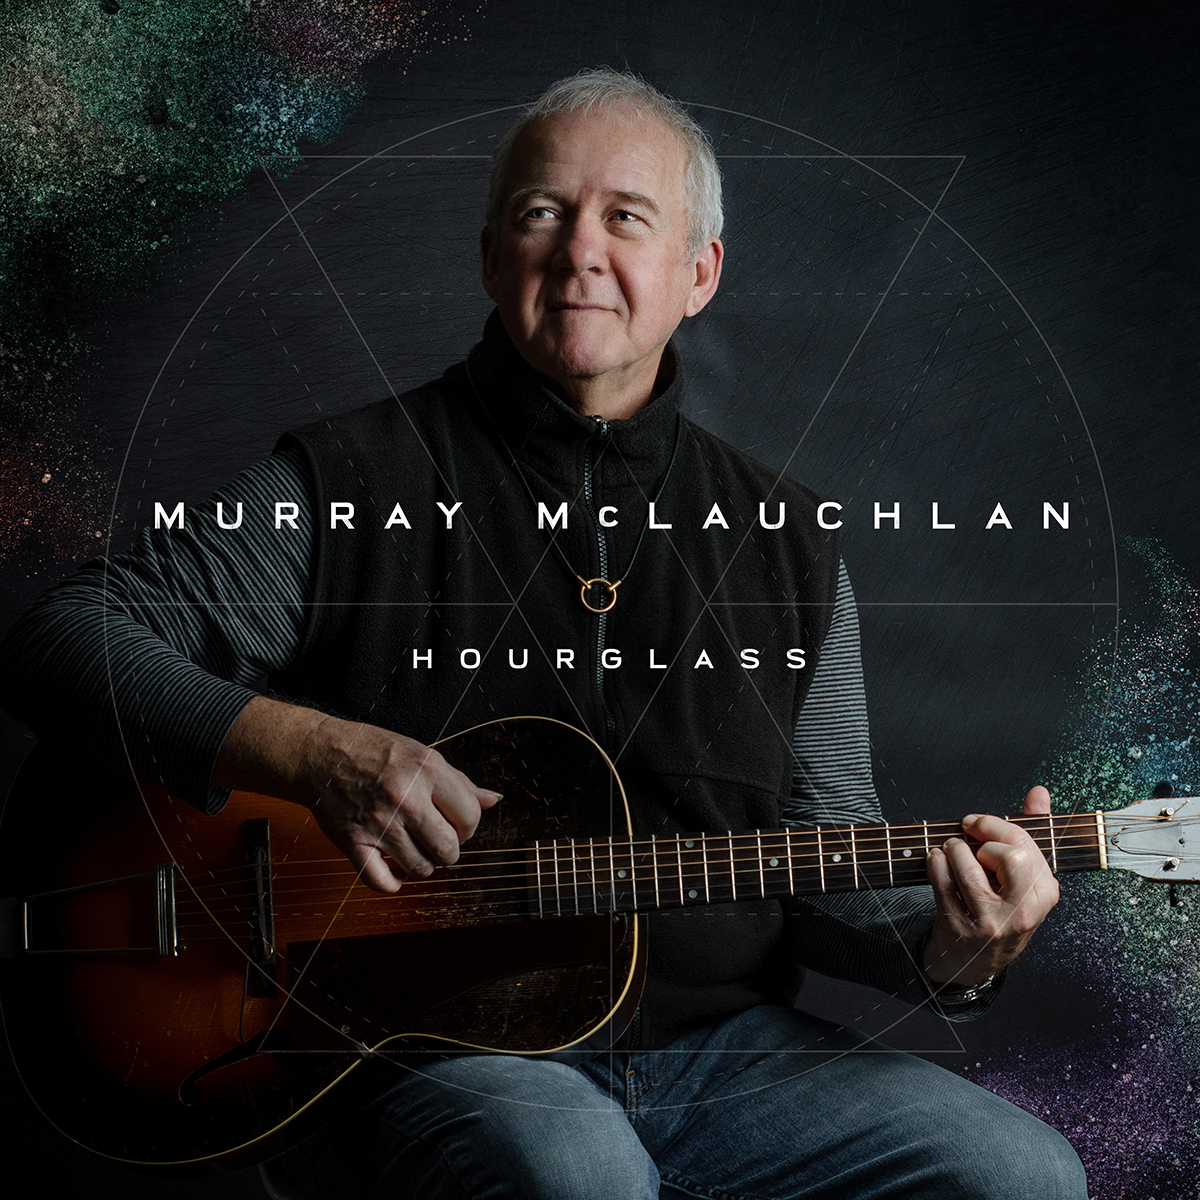 Hourglass – Murray McLauchlan's Timely New Album